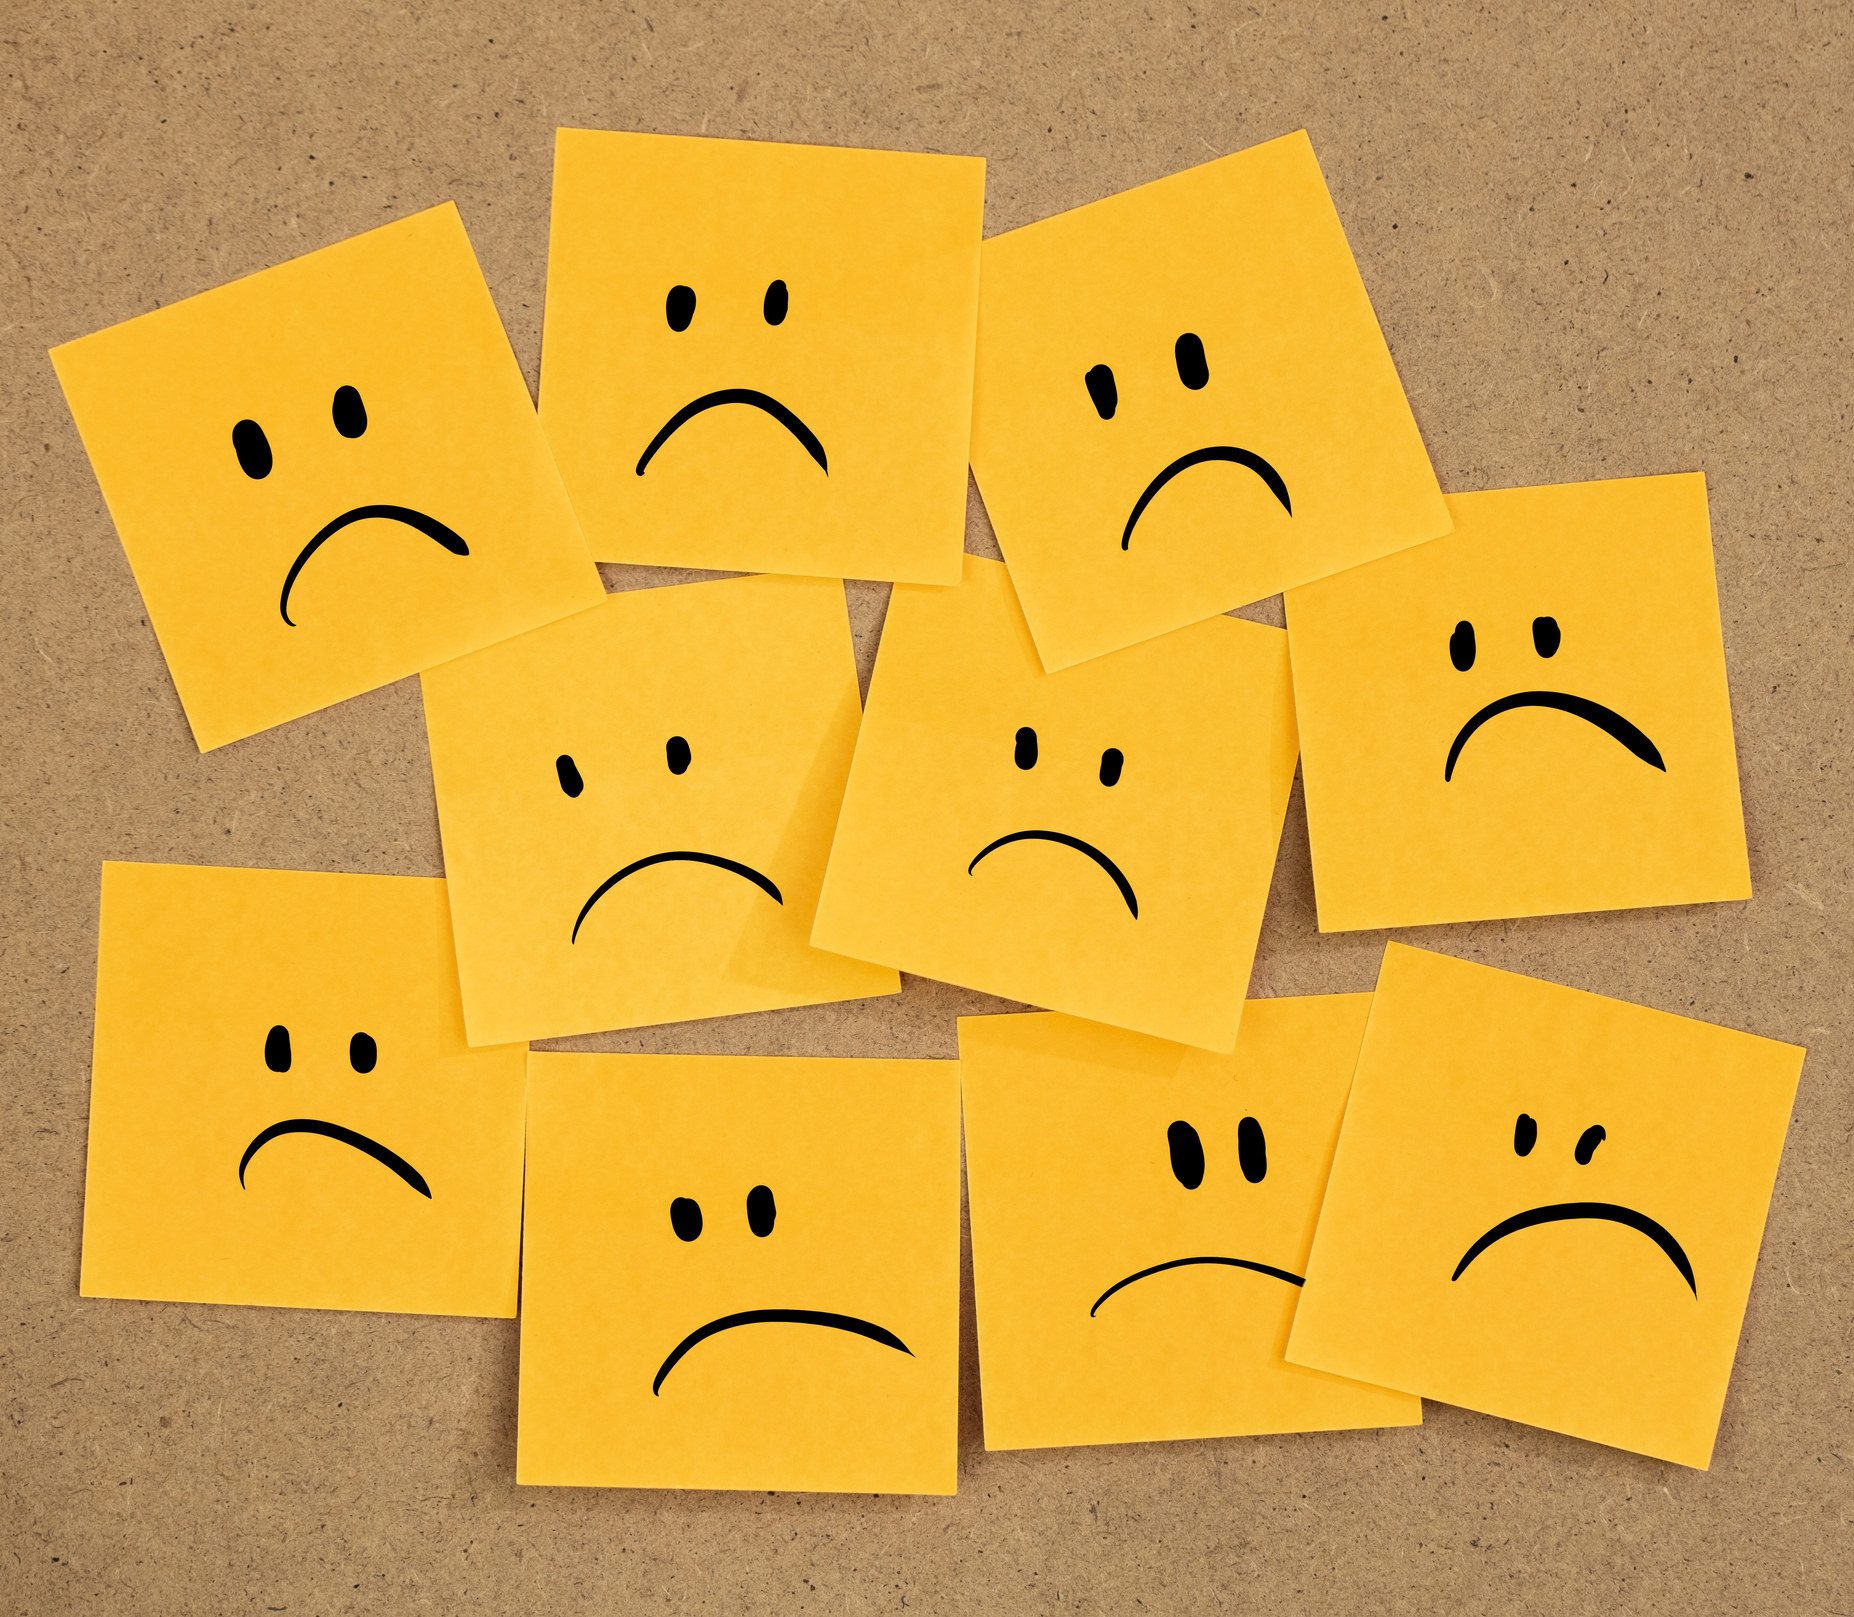 Ten post-it notes with sad faces on them arranged on a corkboard